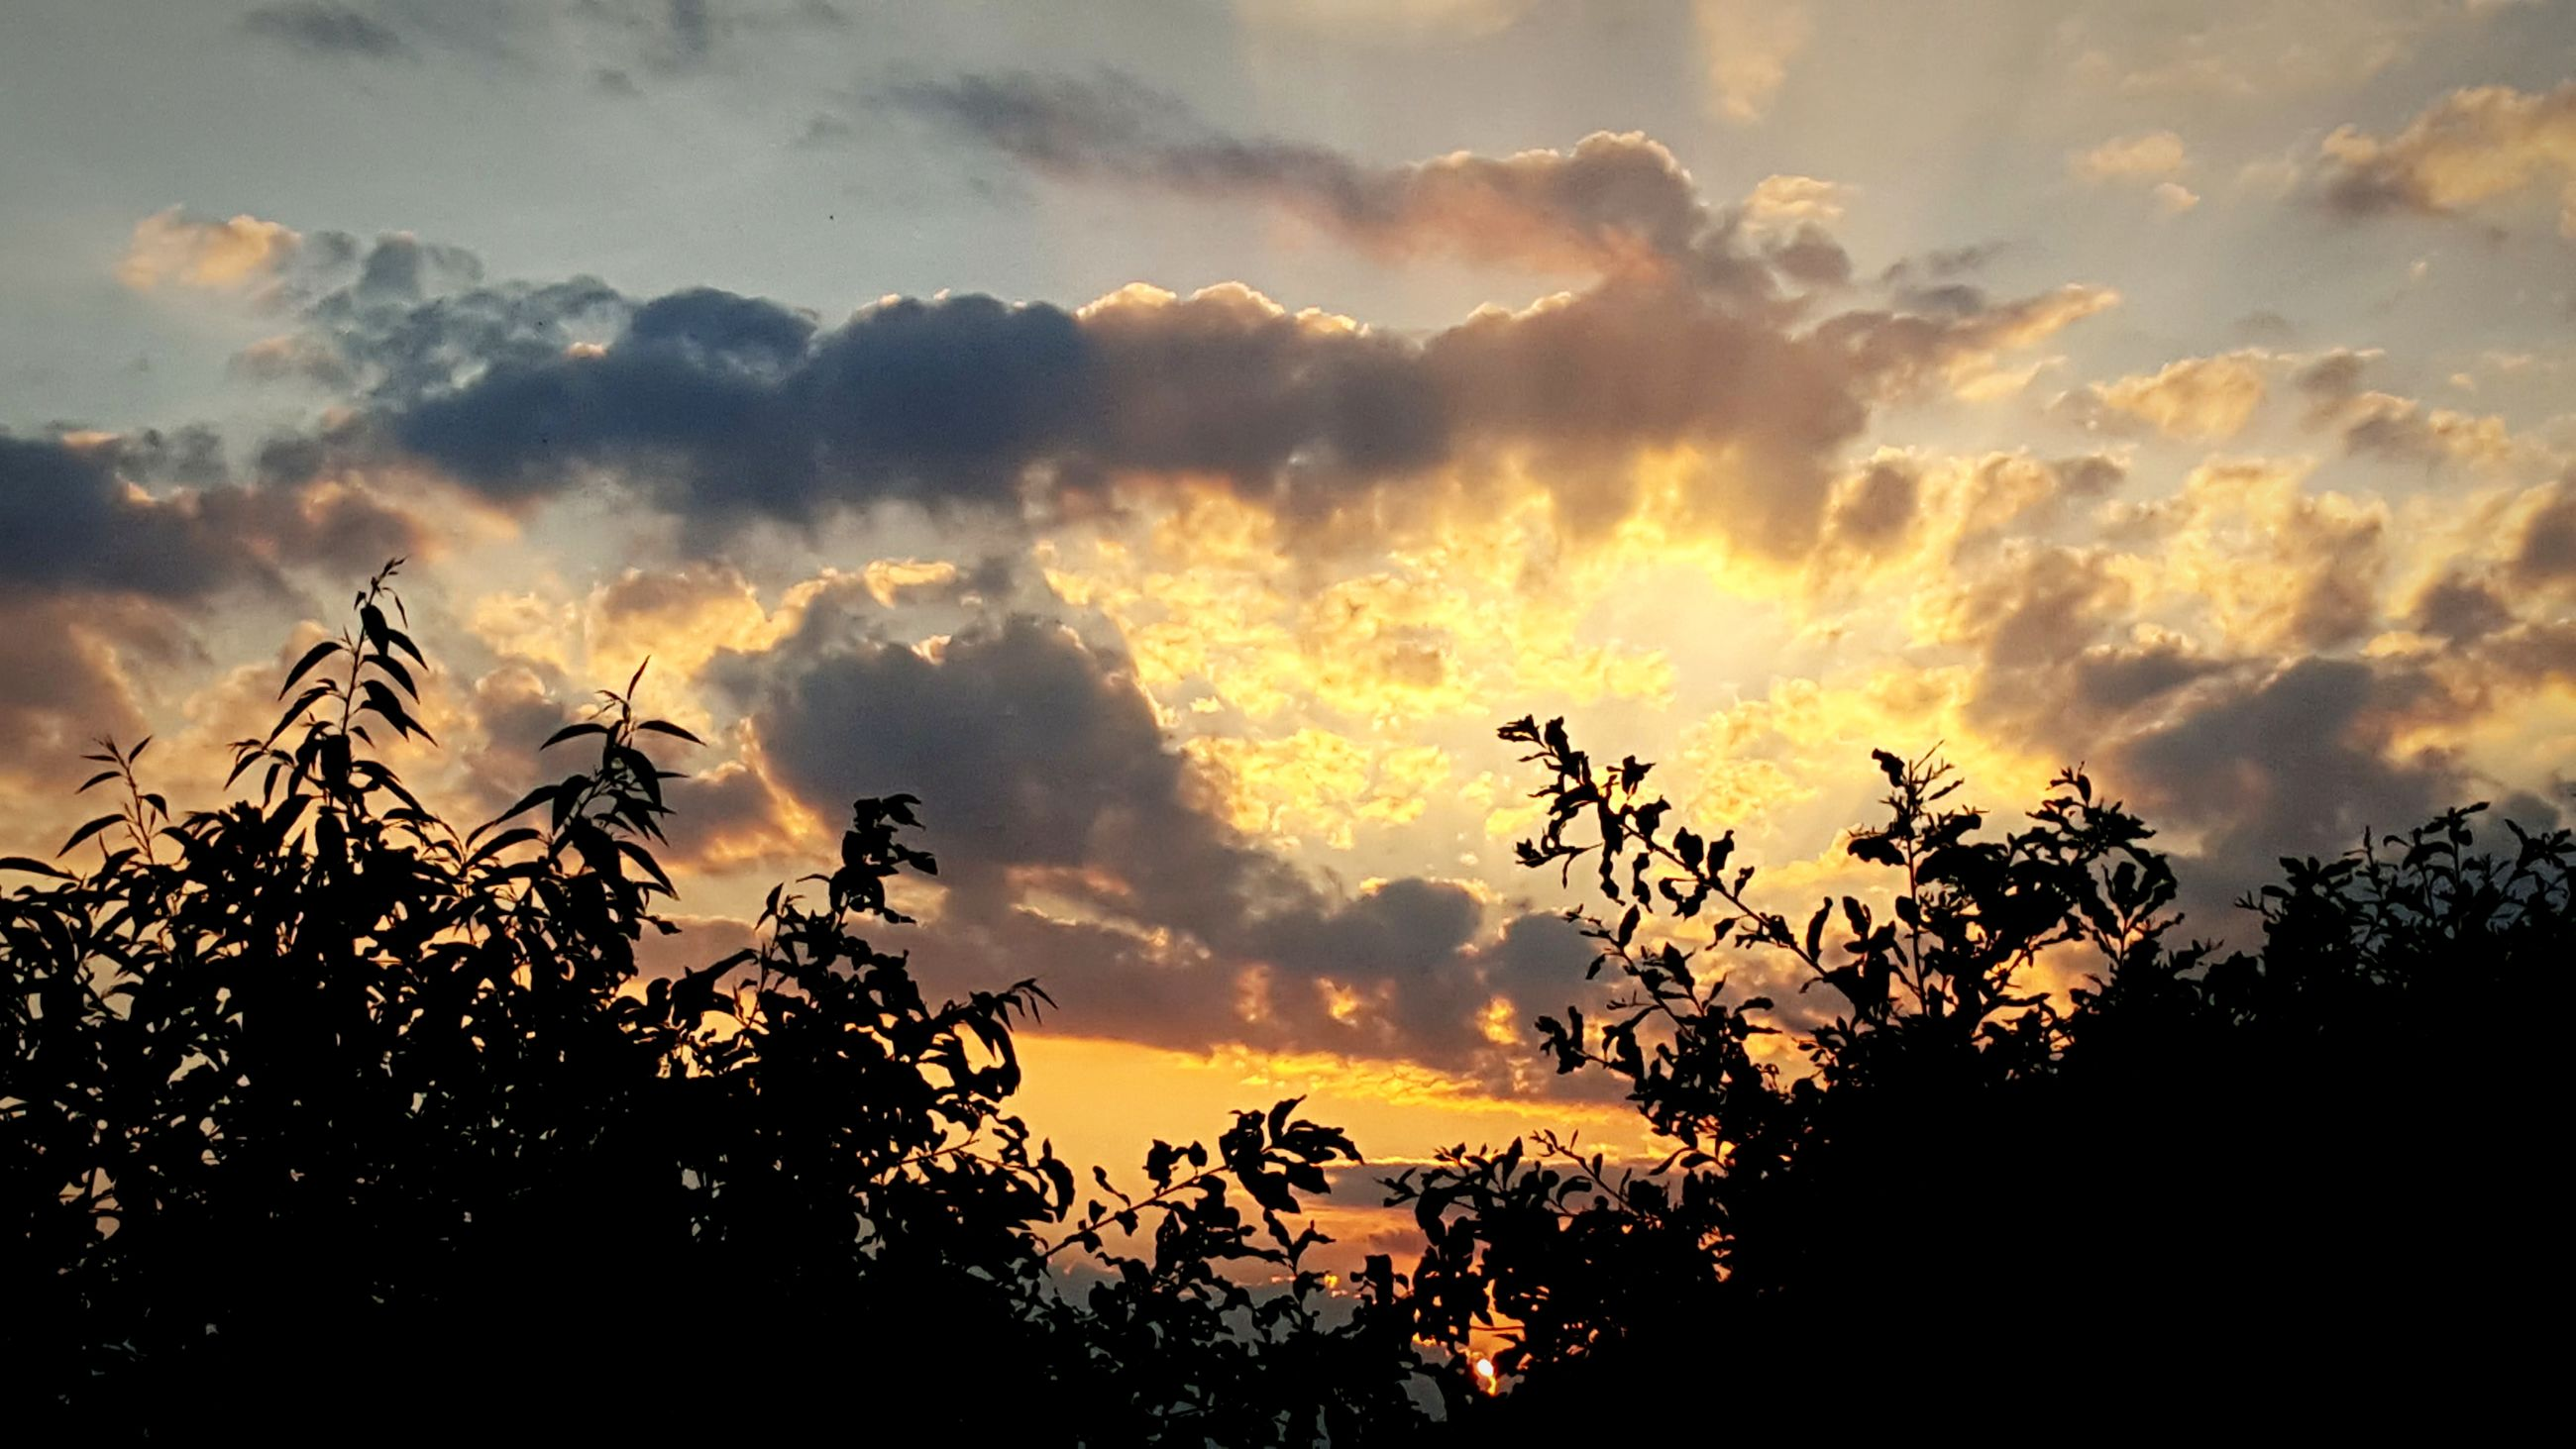 sunset, nature, beauty in nature, silhouette, sky, tree, cloud - sky, orange color, tranquility, growth, no people, scenics, tranquil scene, outdoors, low angle view, day